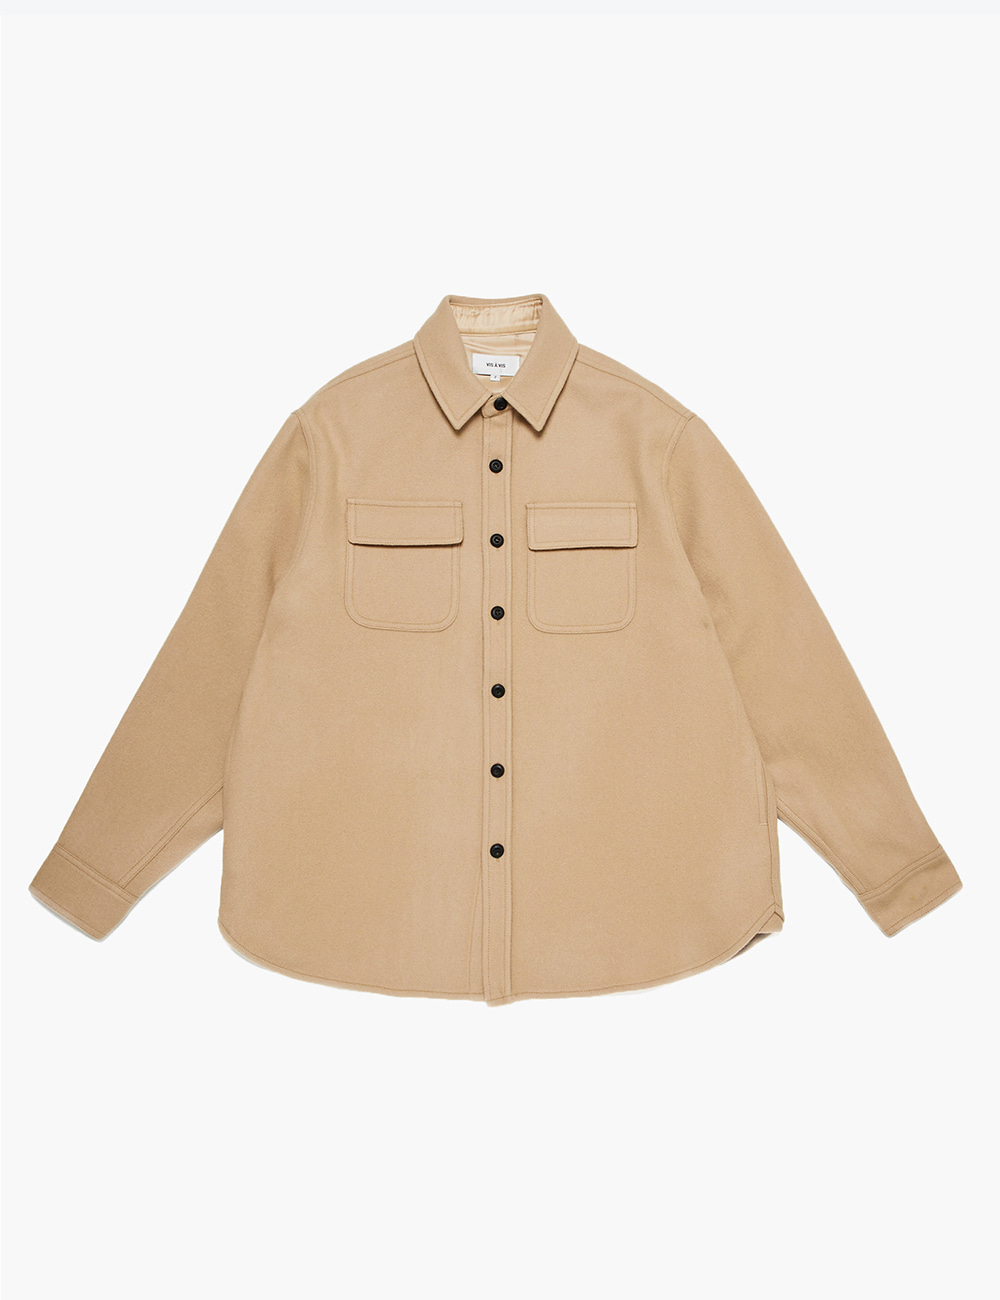 CPO WOOL SHIRT JACKET